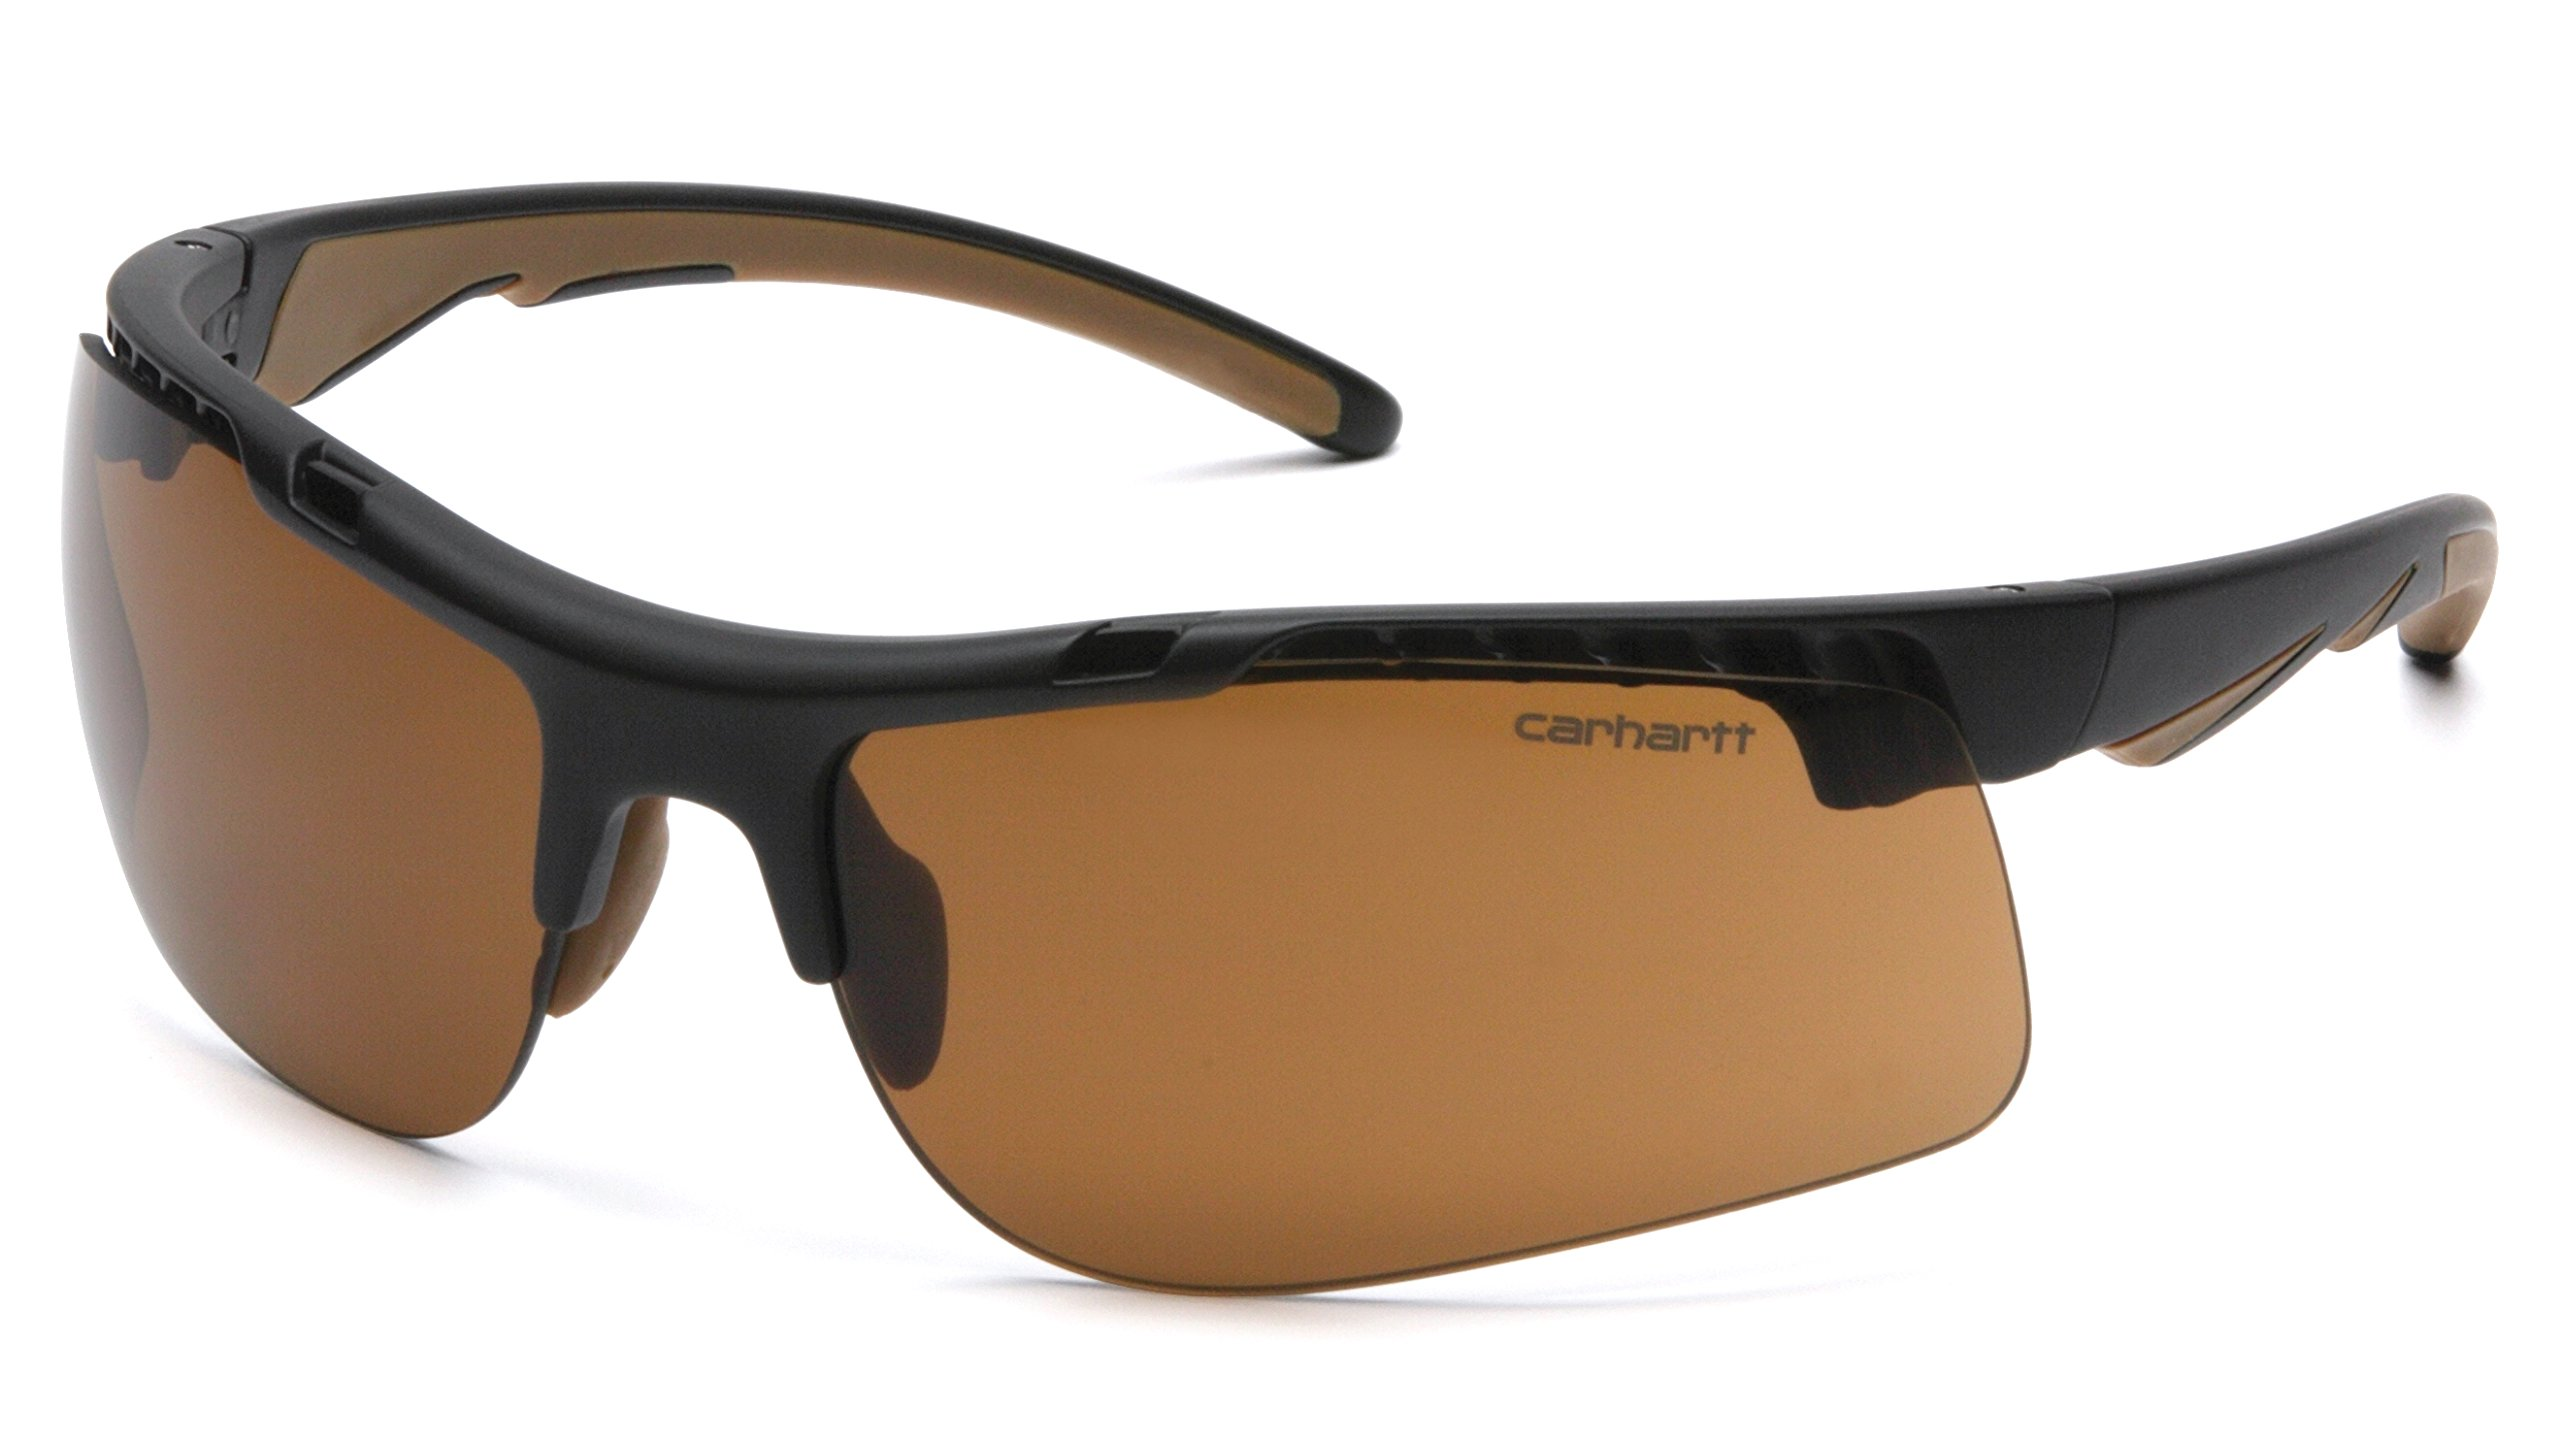 Carhartt Rockwood Safety Glasses, Sandstone Bronze Anti-Fog, Frustration-Free Packaging by Carhartt